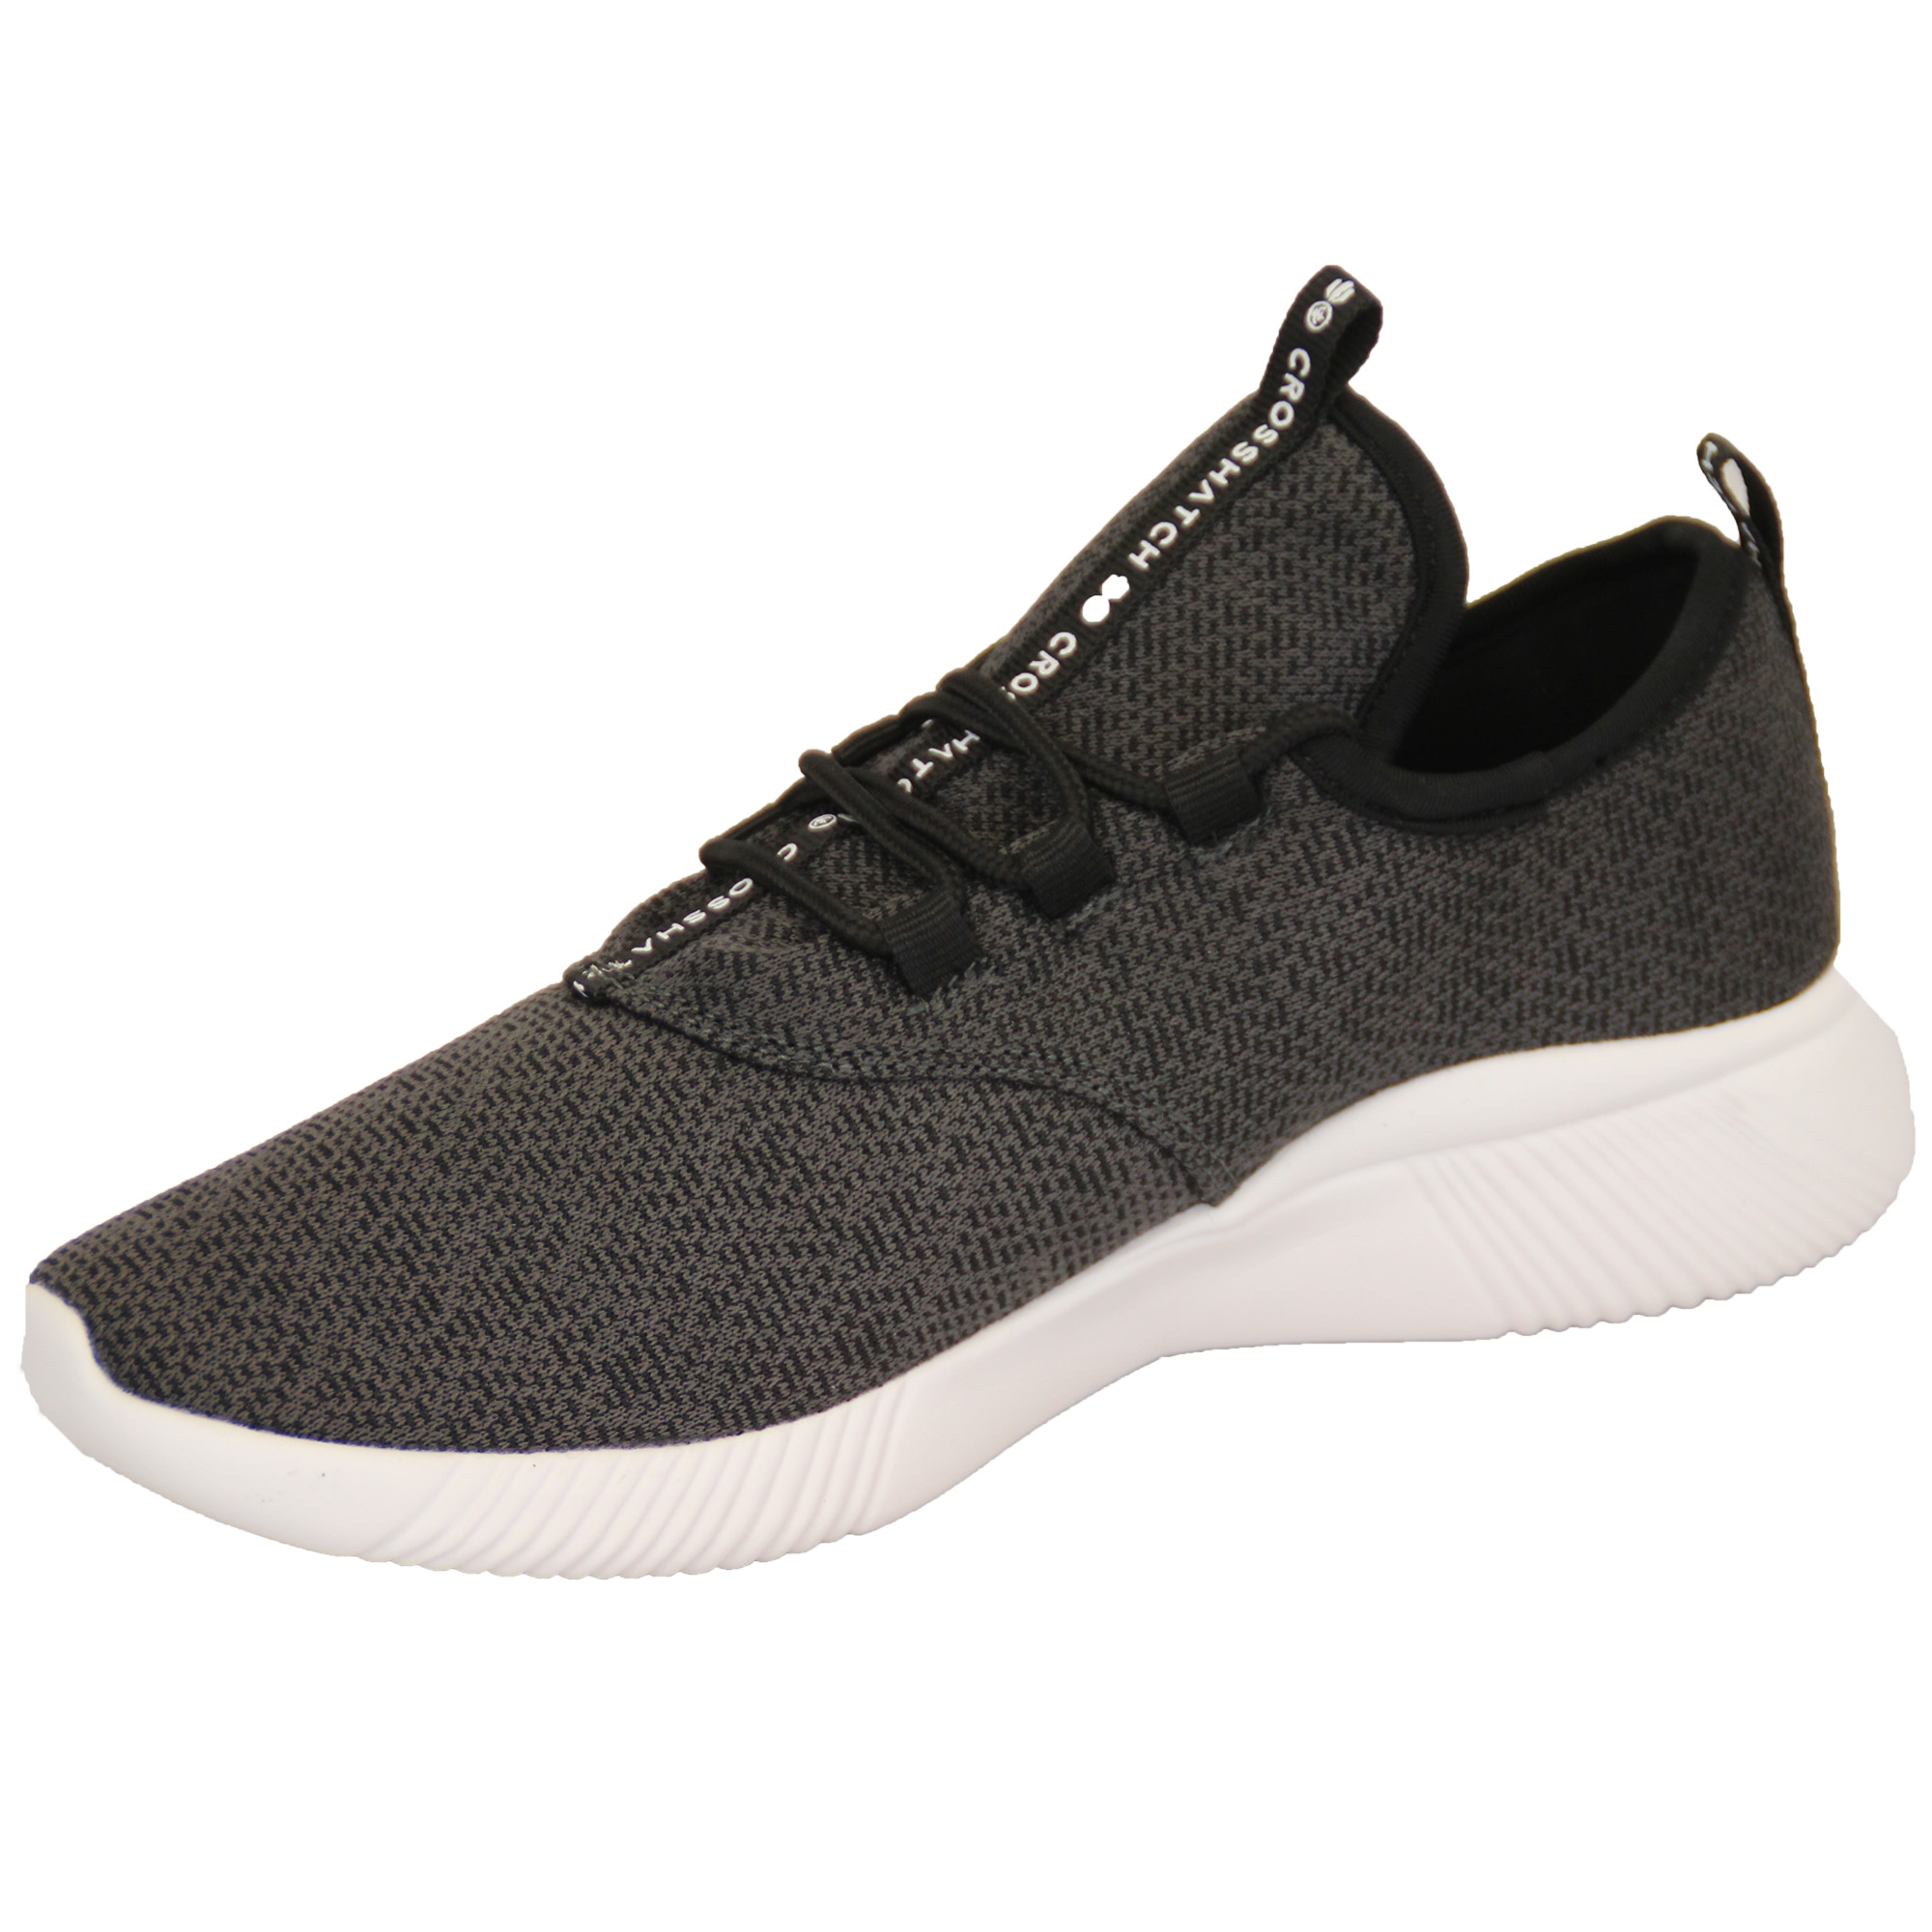 Mens-Trainers-Crosshatch-Running-Speed-Lace-Up-Knit-Mesh-Sports-Gym-Shoes-Casual thumbnail 3